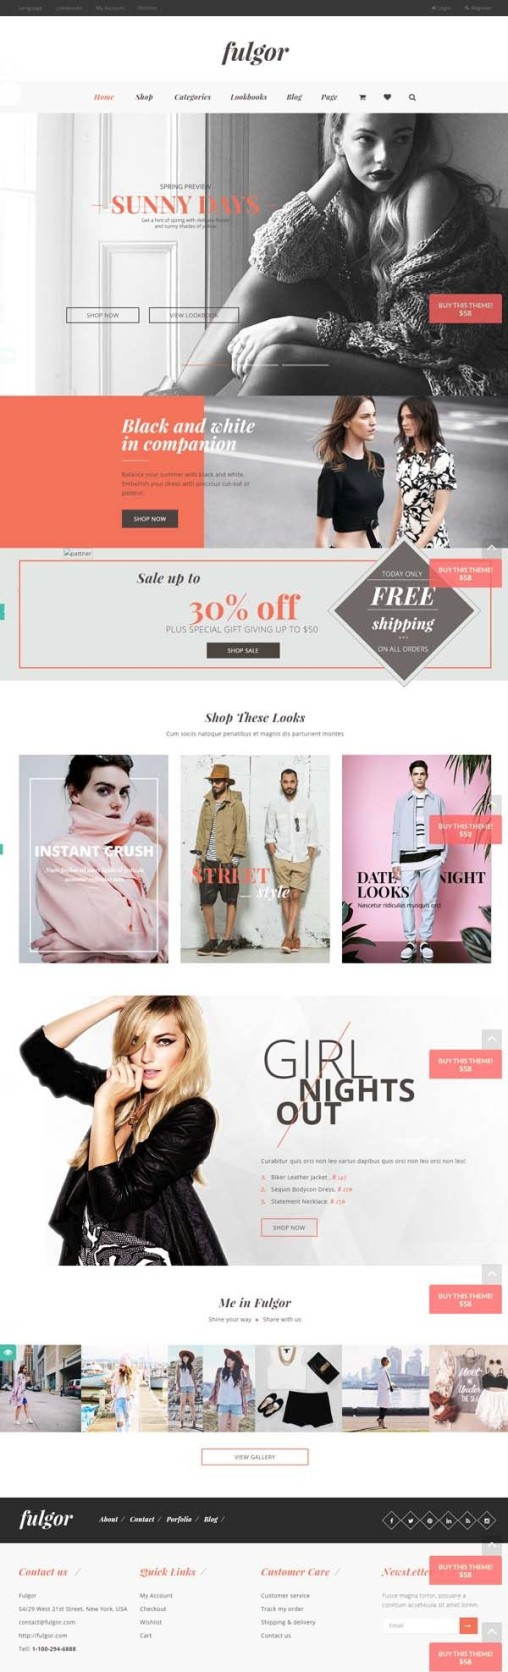 Ecommerce Fashion WordPress Theme